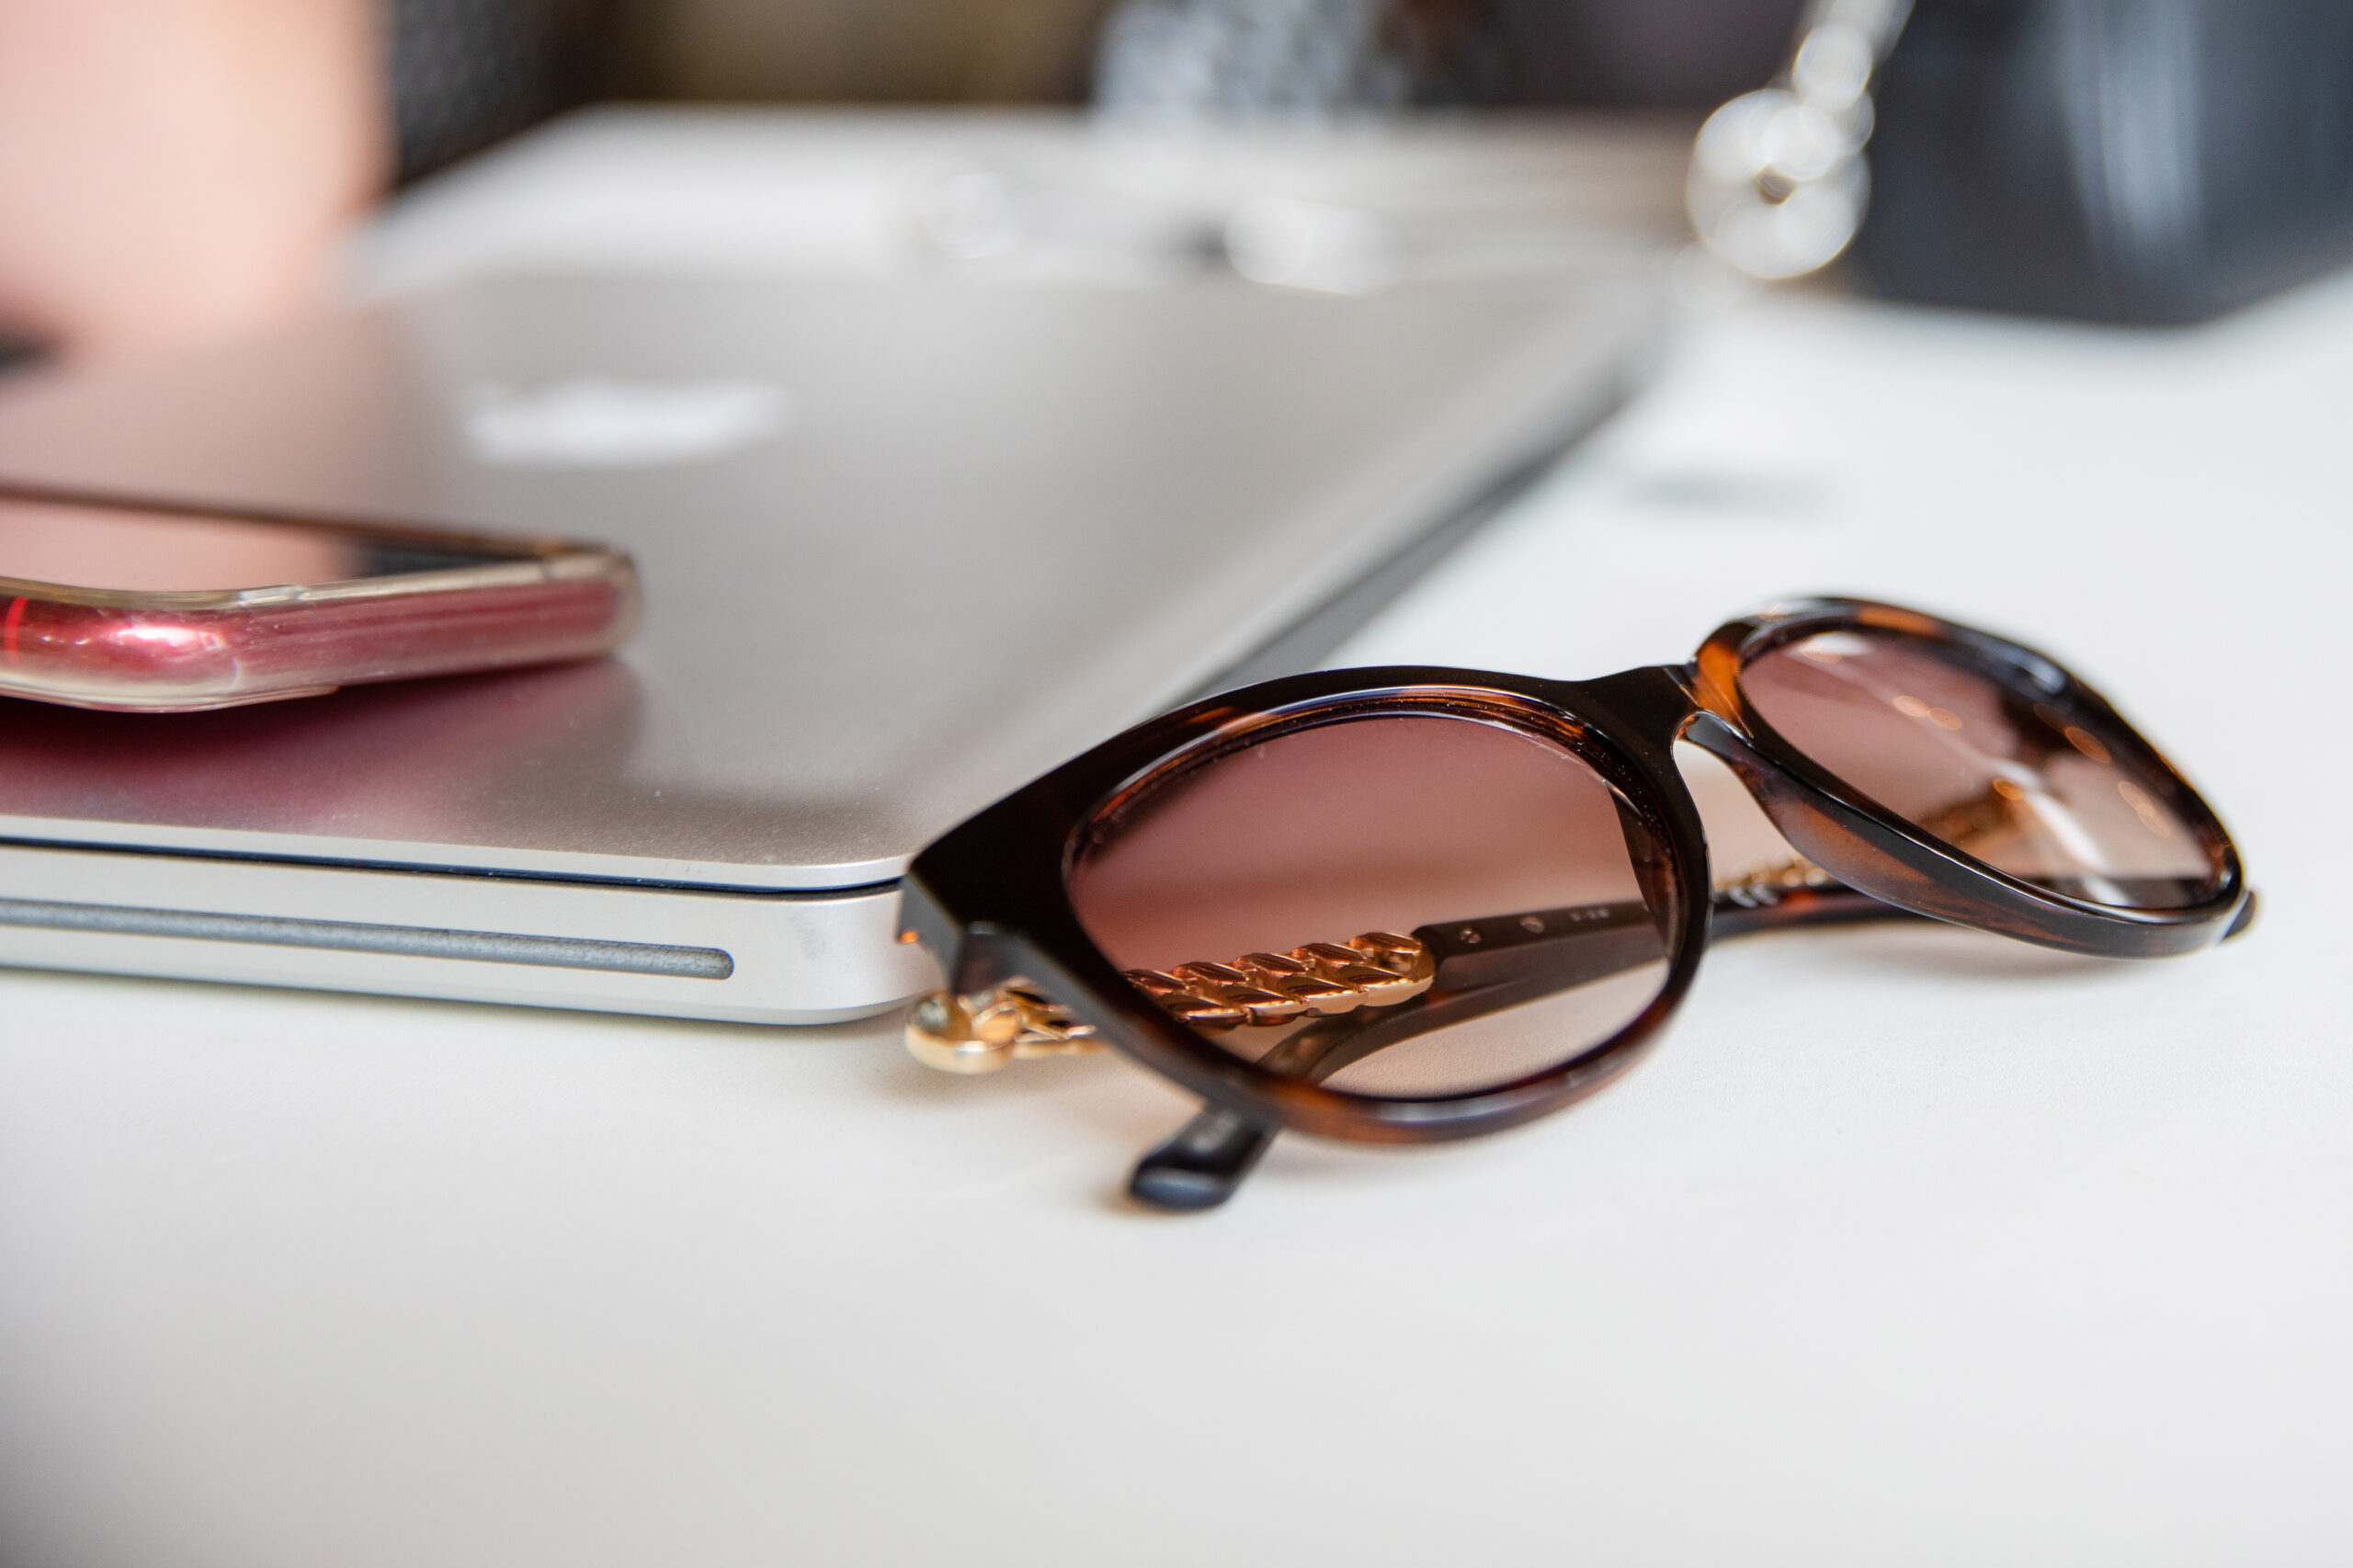 Close up of sunglasses and closed laptop